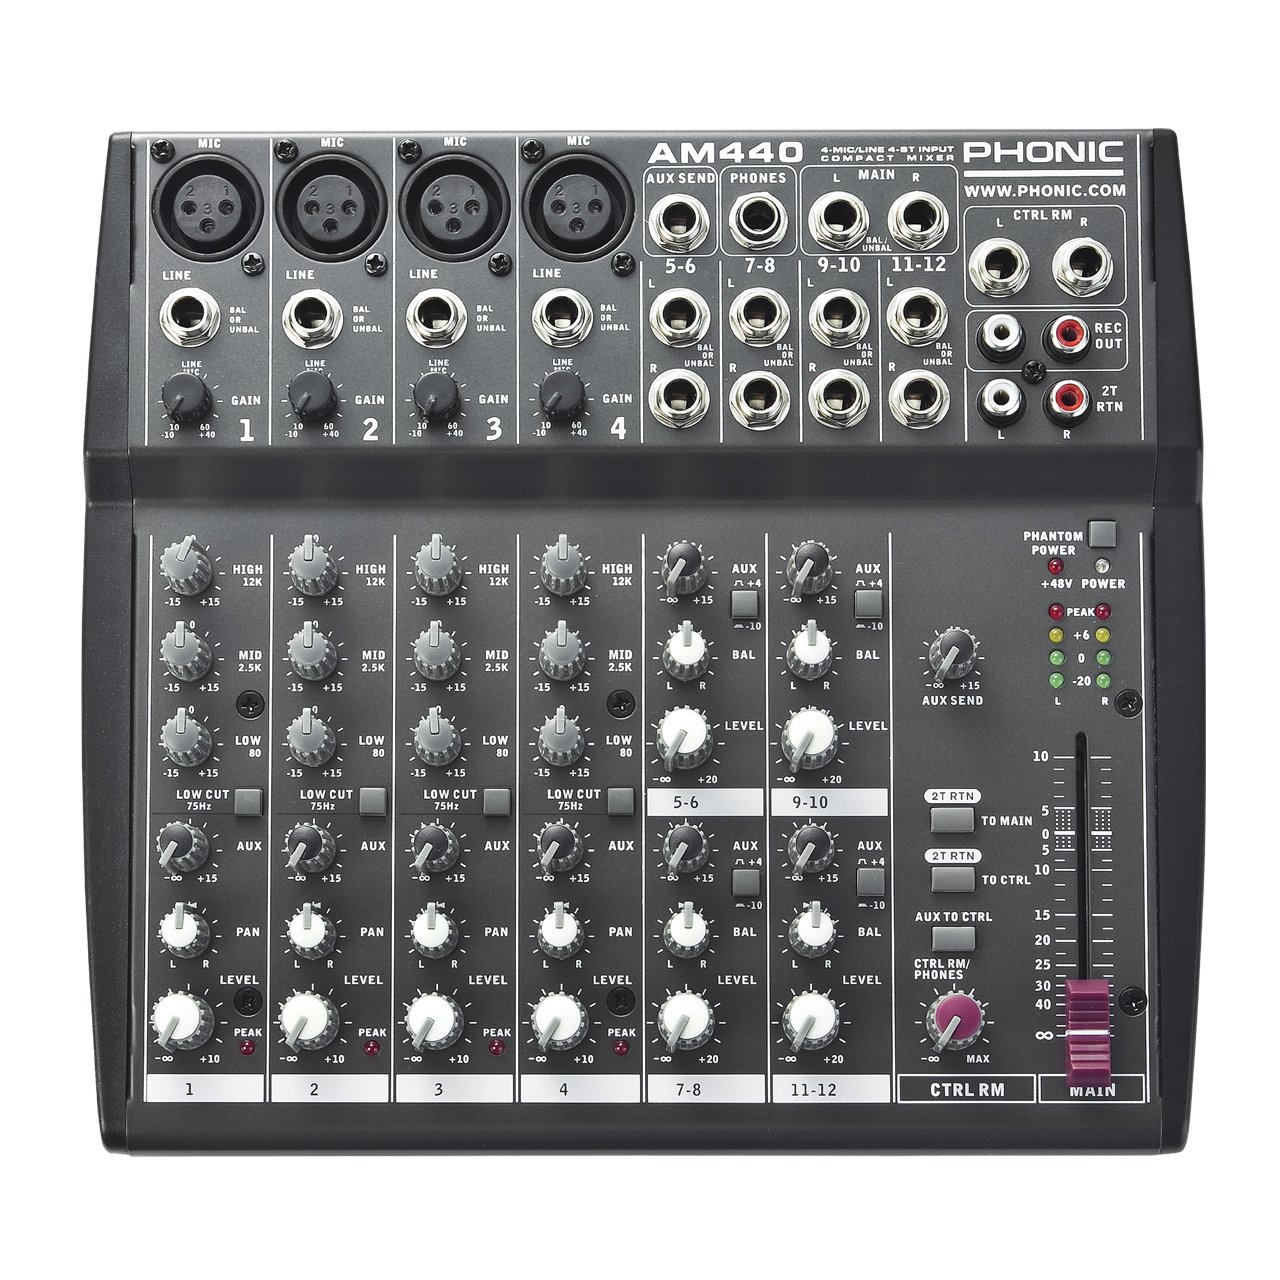 Phonic Mixer - Unpowered (AM440)